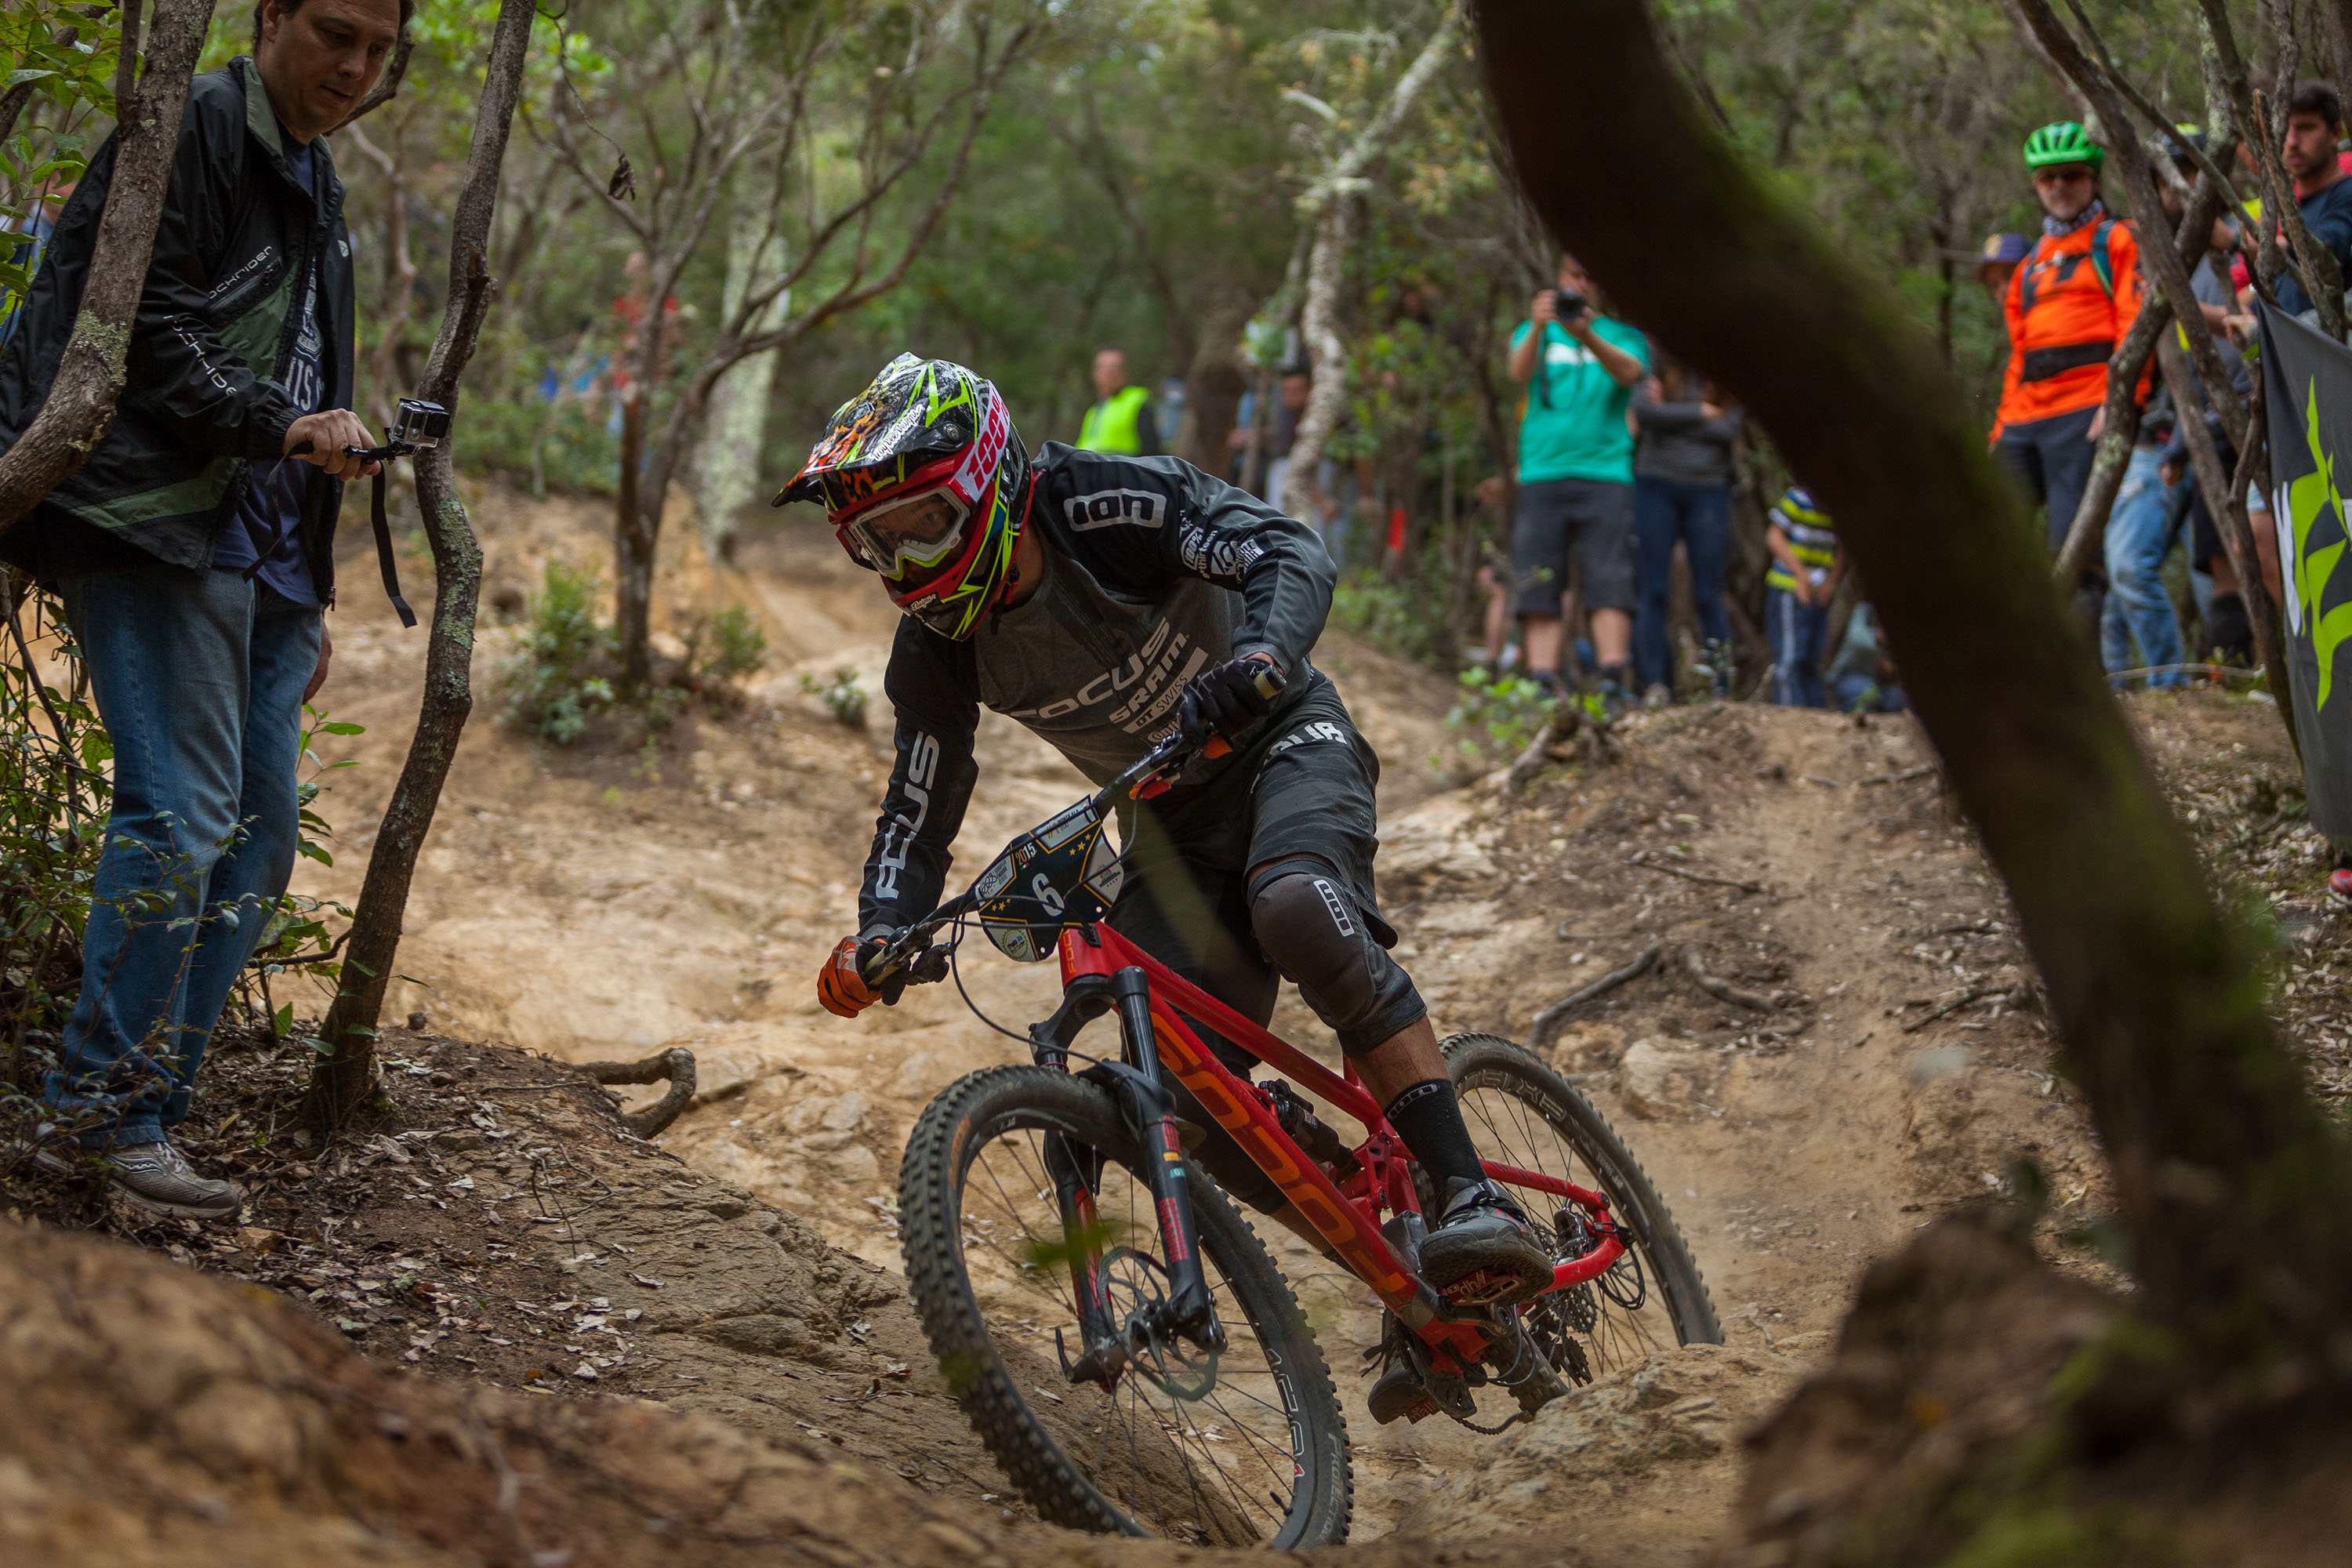 Races down the stage 4 during the first stop of the European Enduro Series in Punta Ala, Italy, on April 26, 2015. Free image for editorial usage only: Photo by Antonio López Ordóñez.